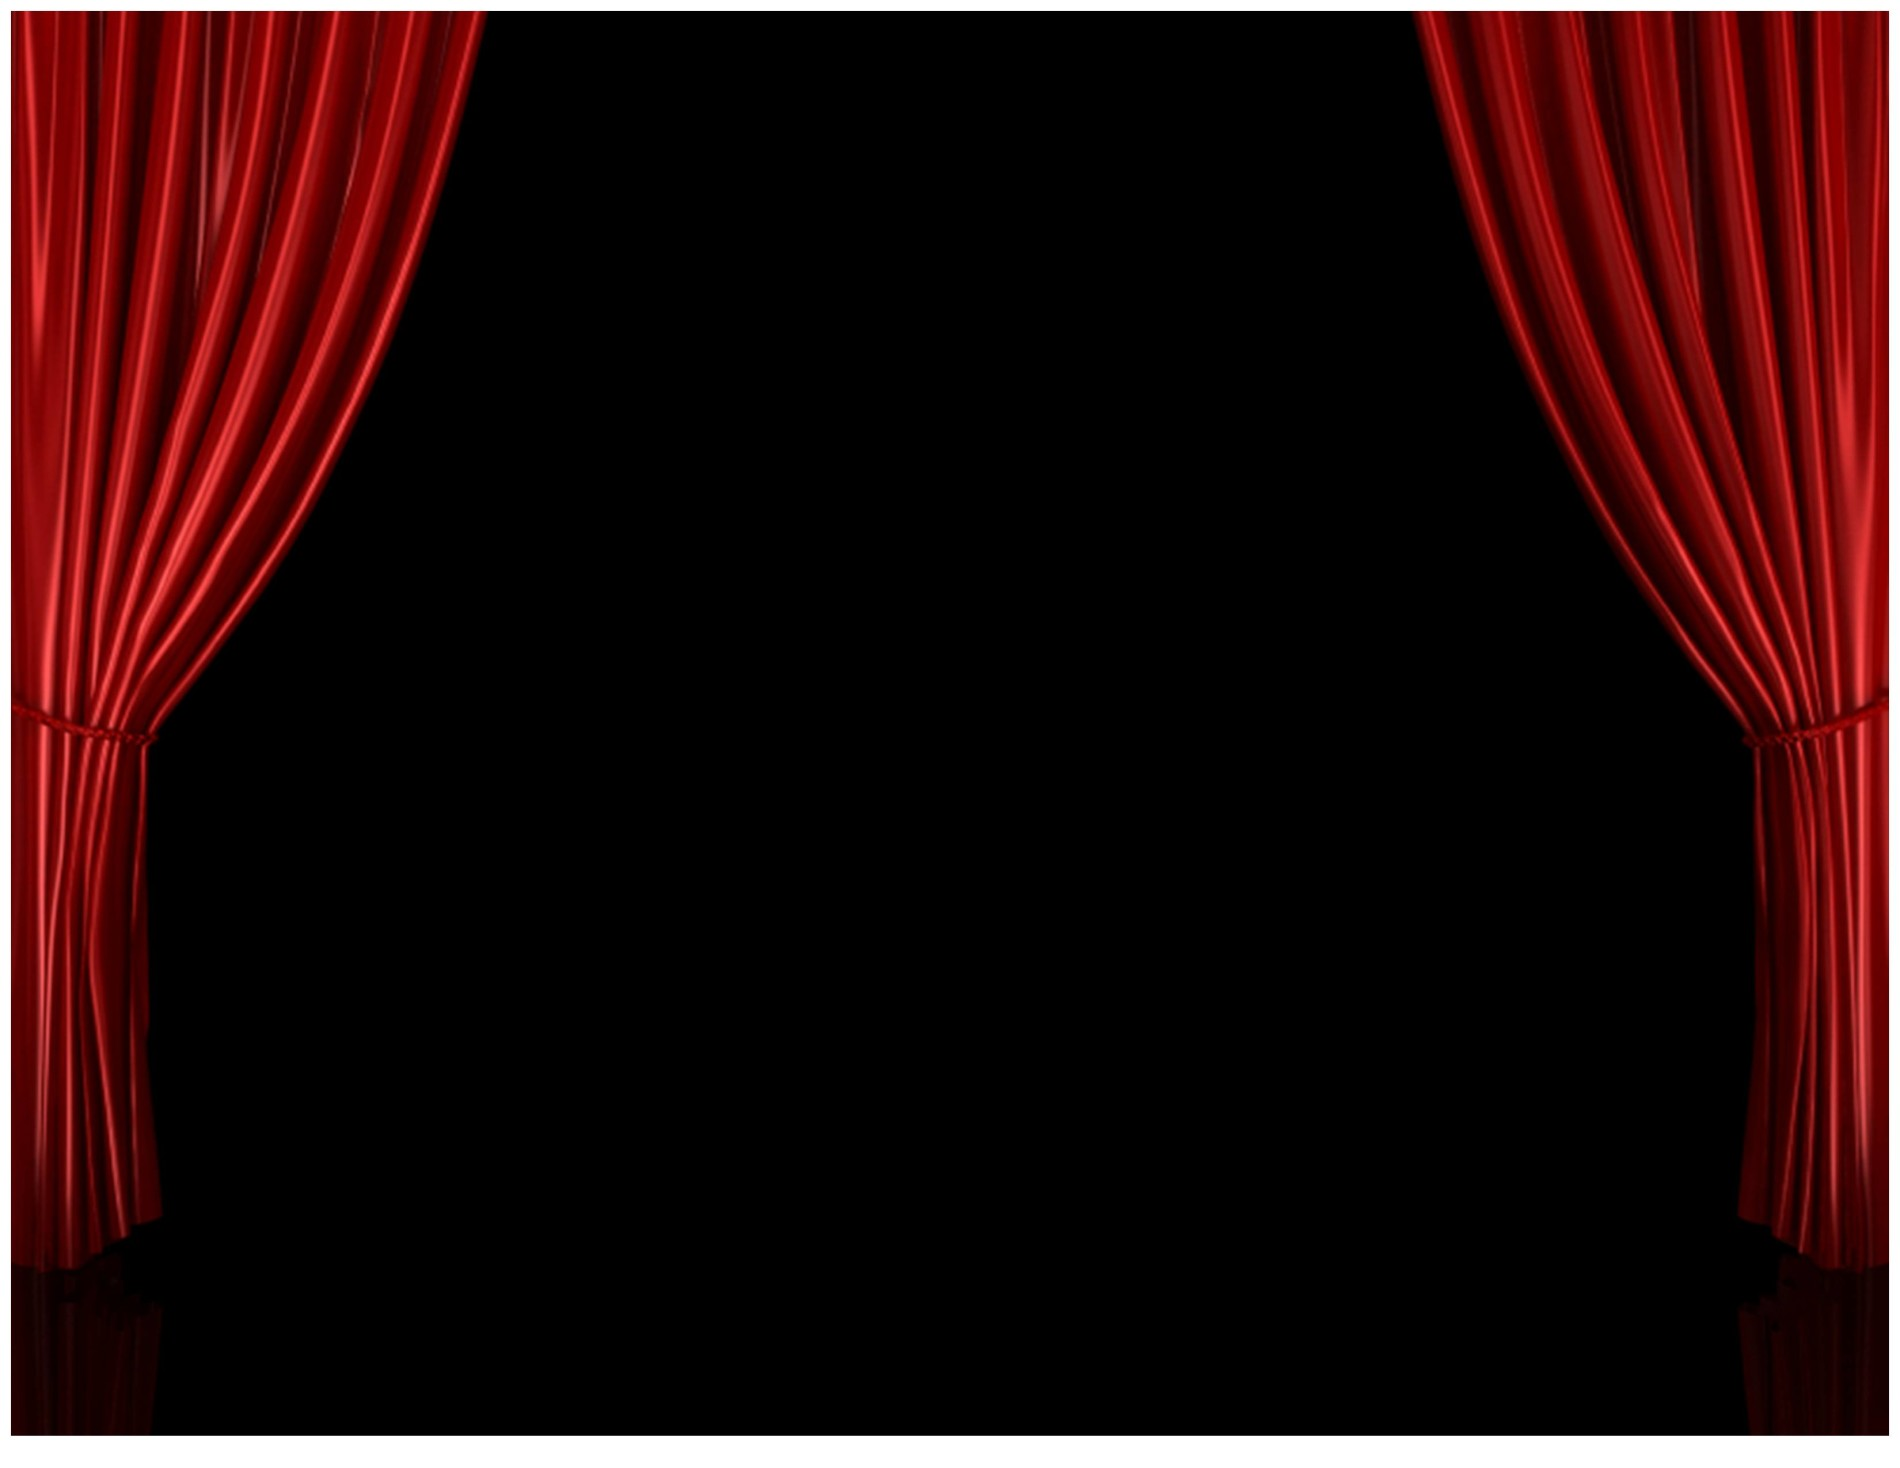 red curtains theatre - photo #36